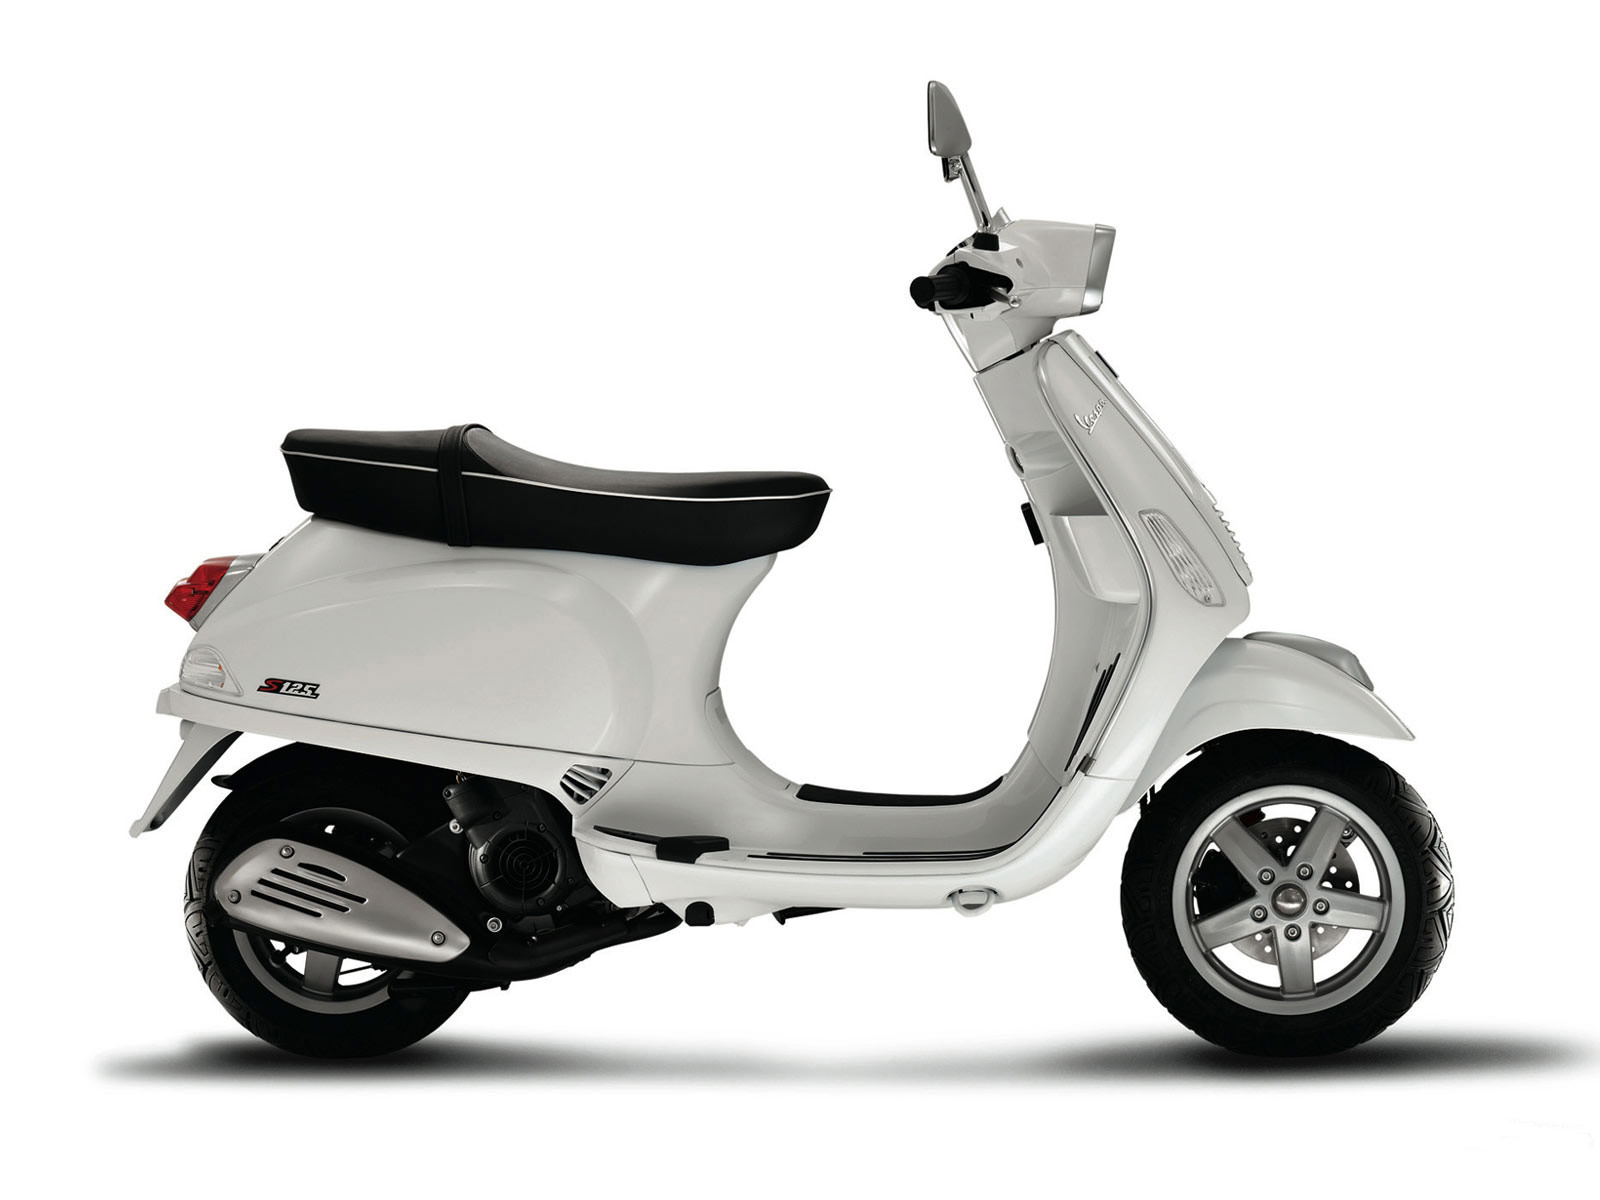 2008 Vespa S 125 Scooter Pictures Accident Lawyers Info